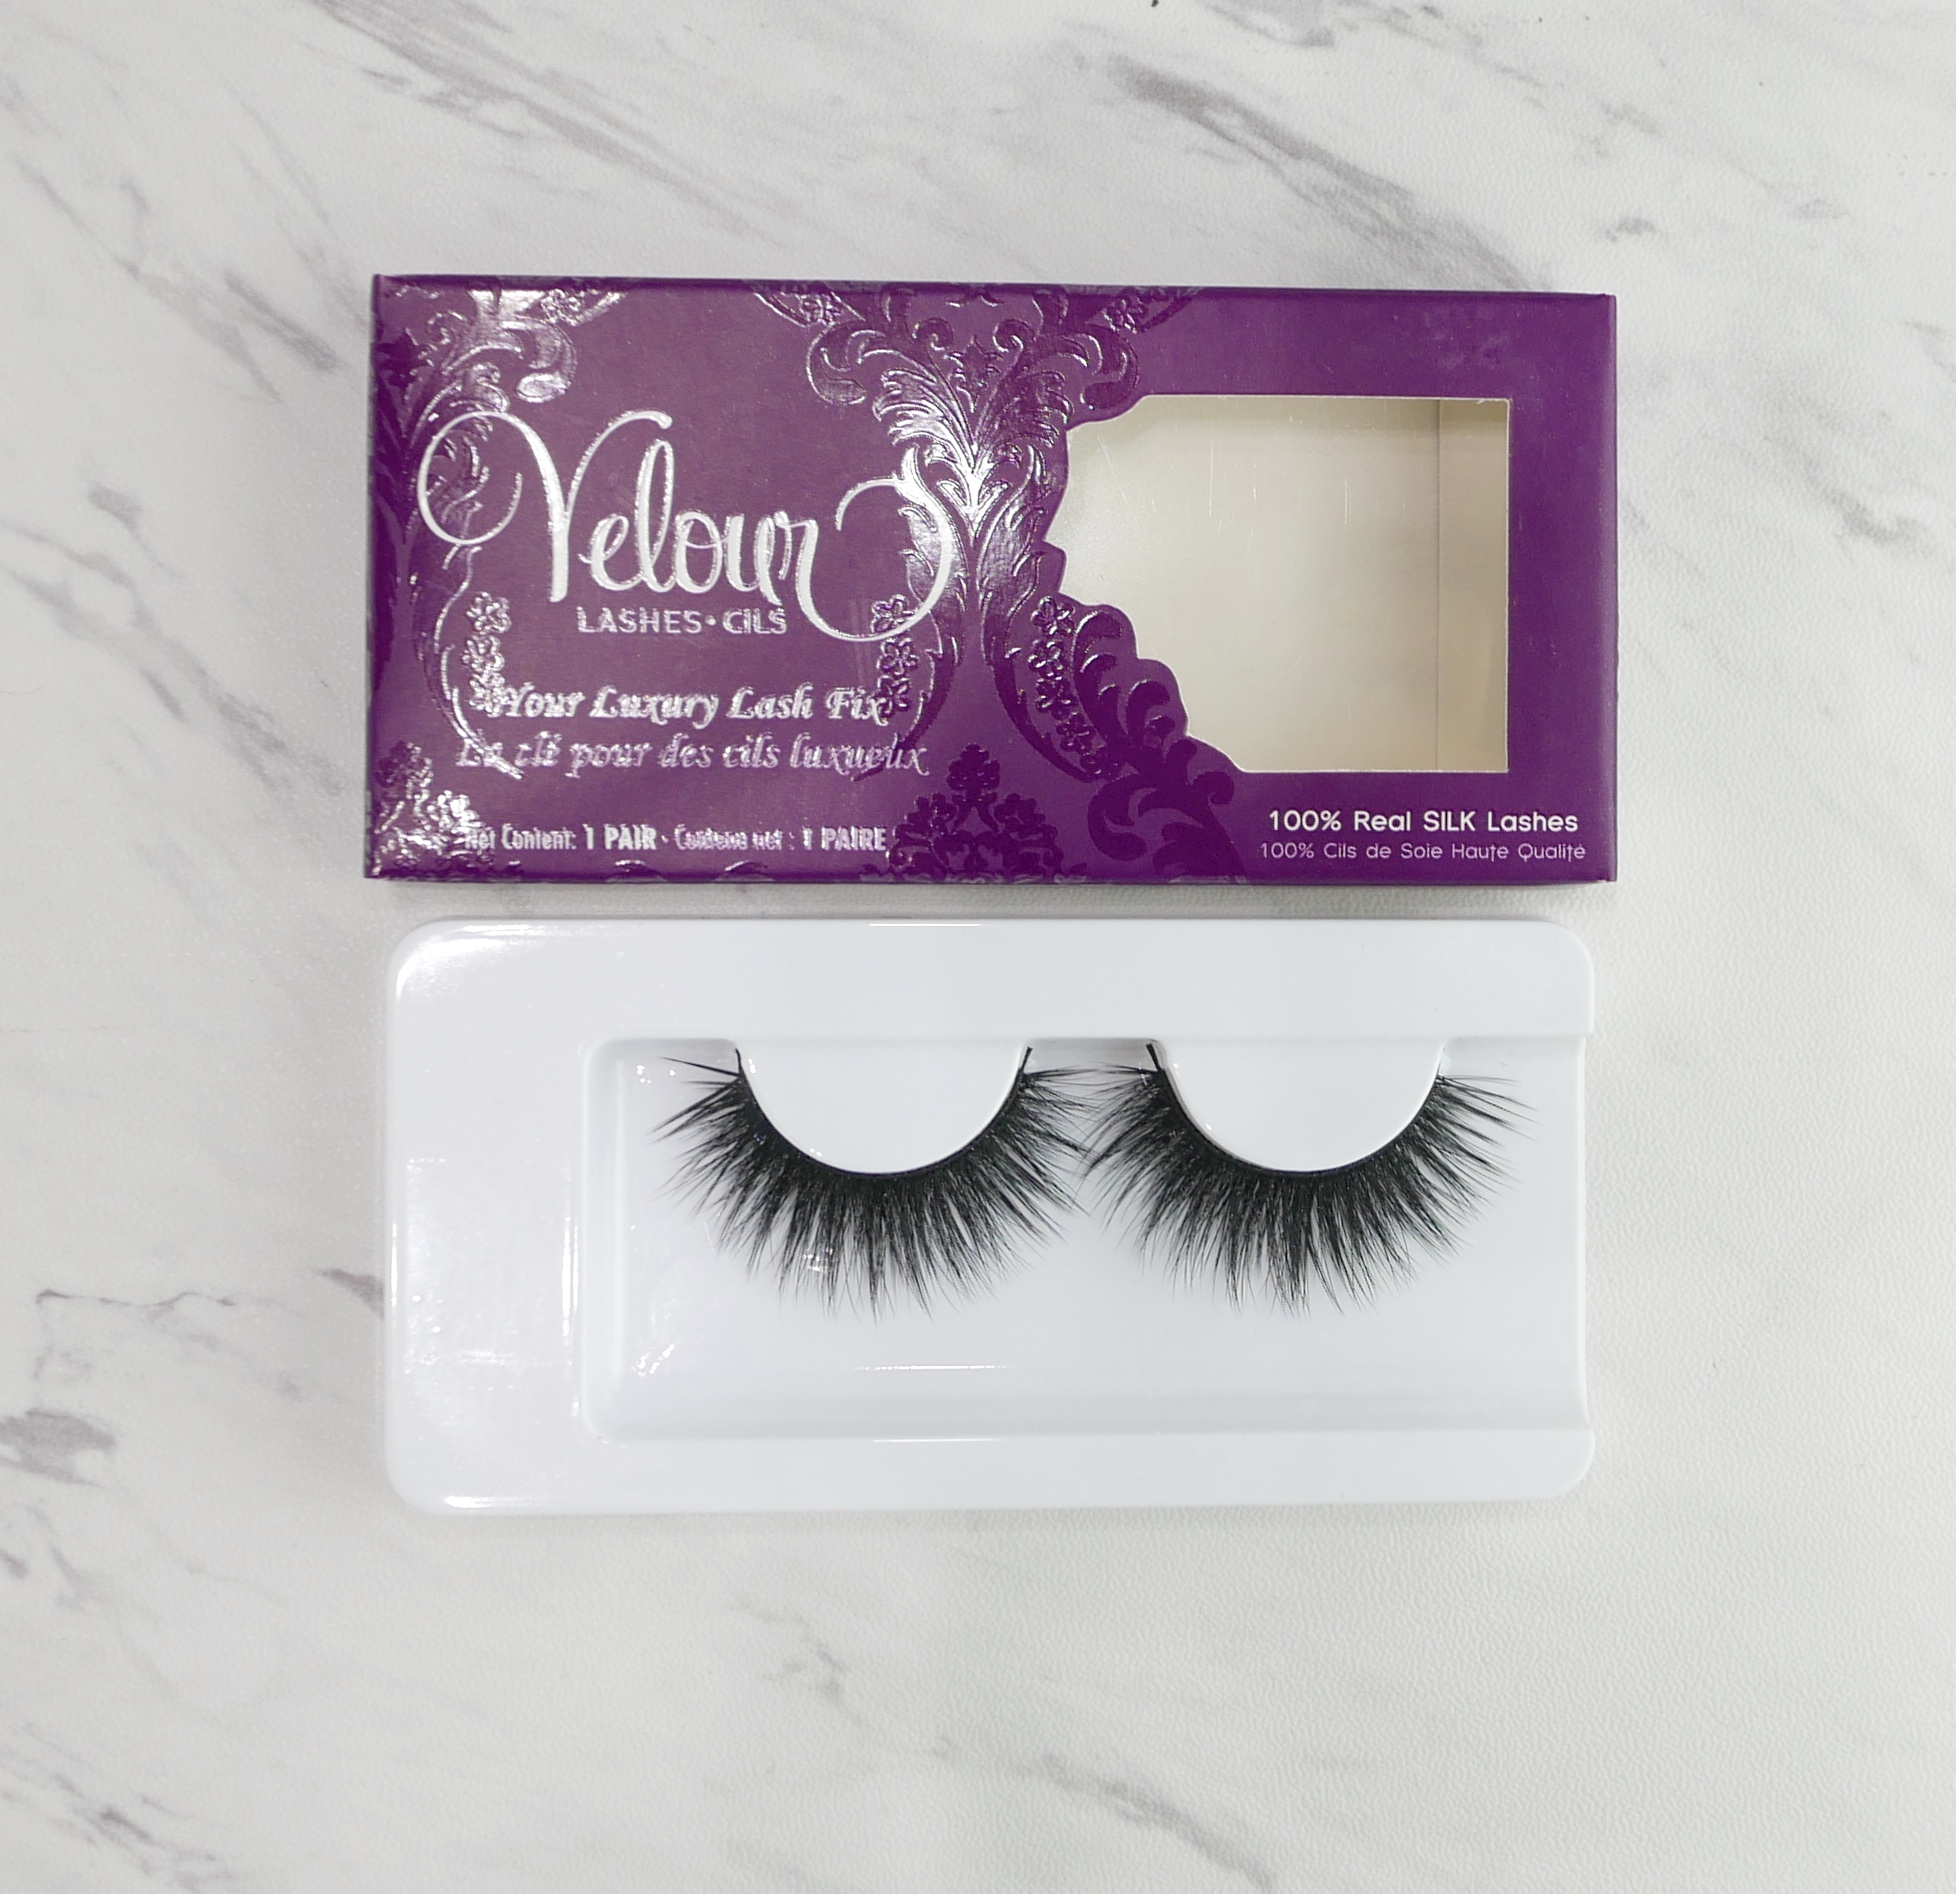 Fluff'n Whispie by Velour Lashes